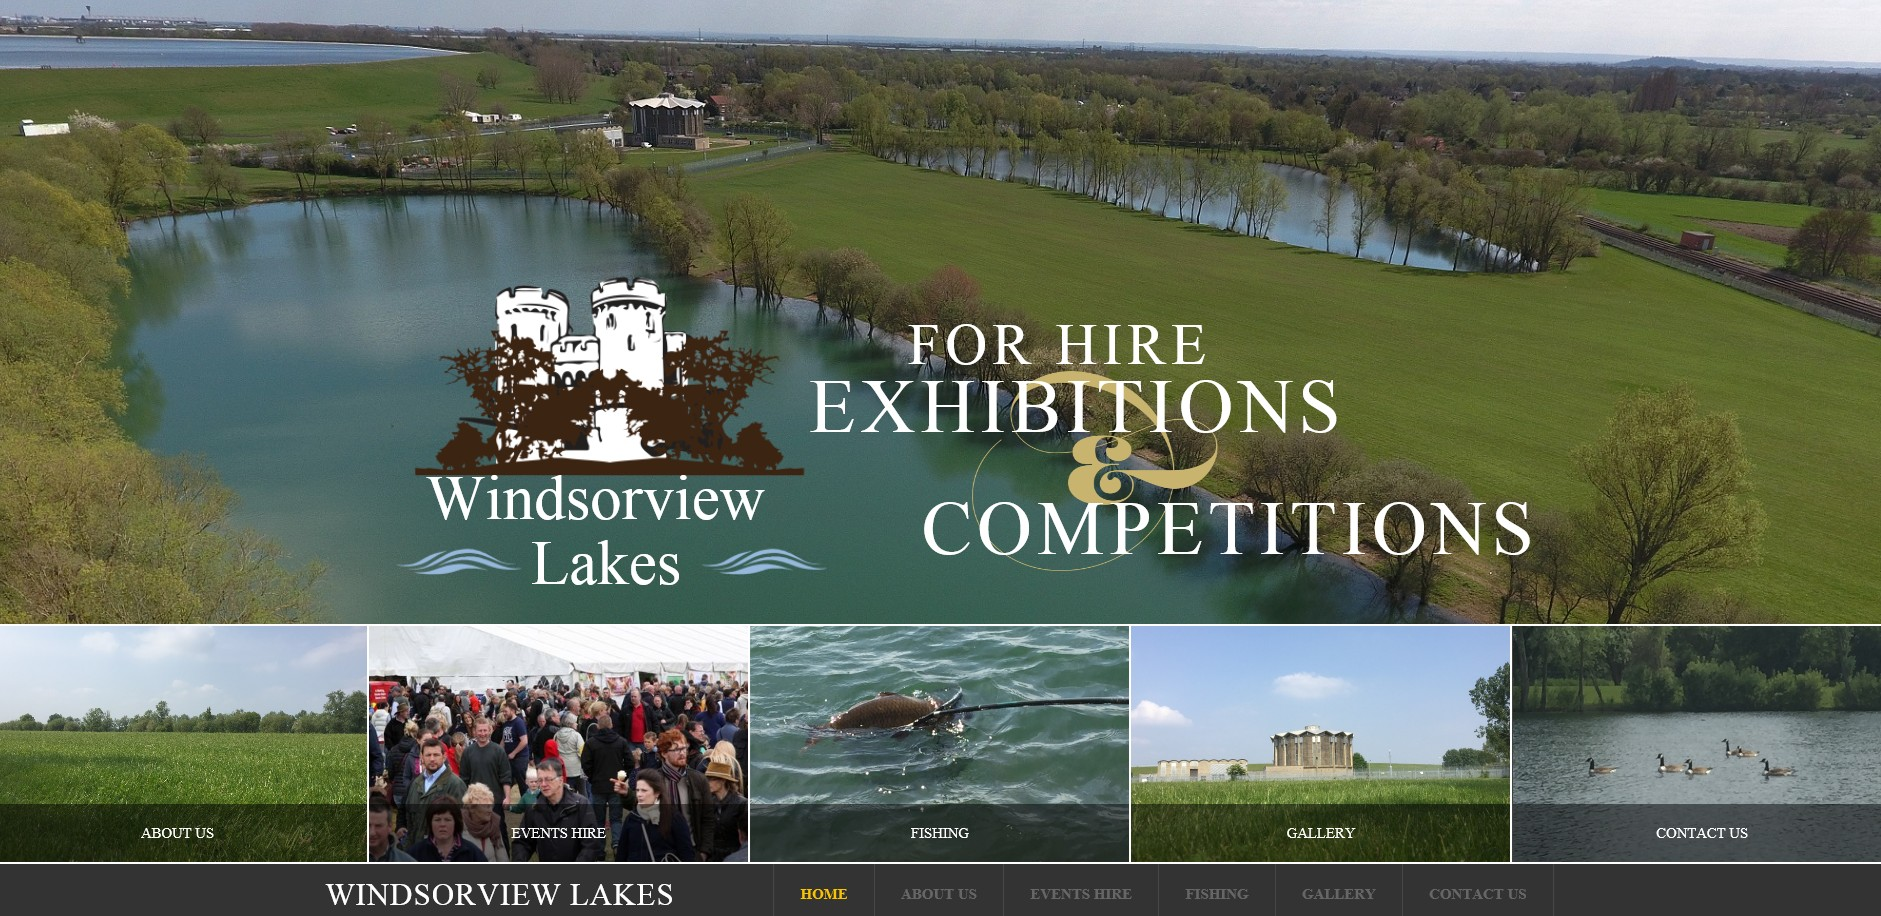 Windsorview Lakes By T900 Website Design in Surrey